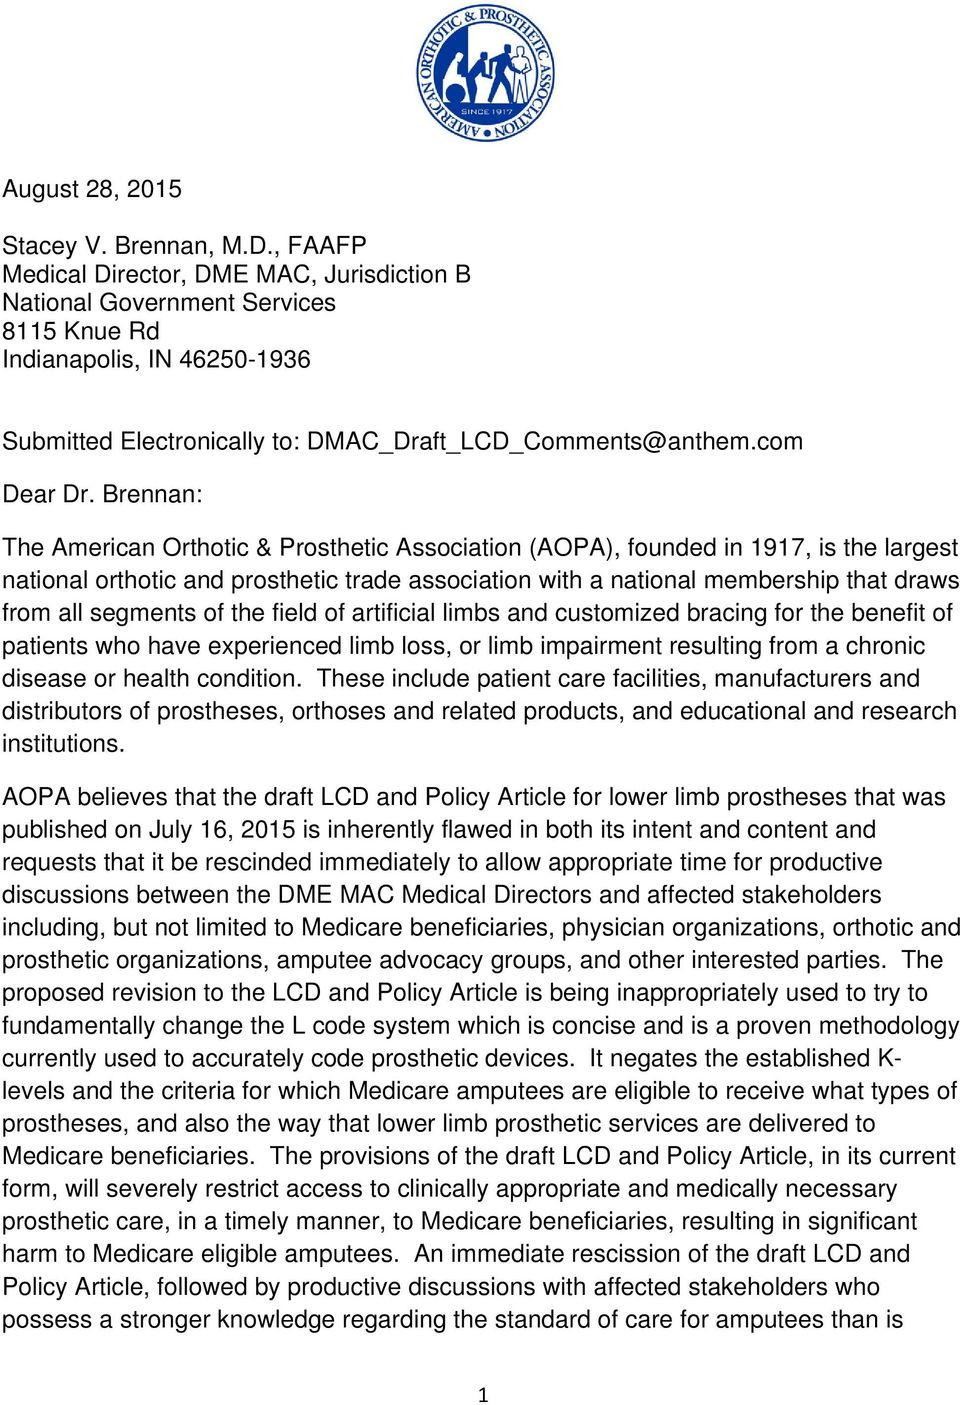 Brennan: The American Orthotic & Prosthetic Association (AOPA), founded in 1917, is the largest national orthotic and prosthetic trade association with a national membership that draws from all